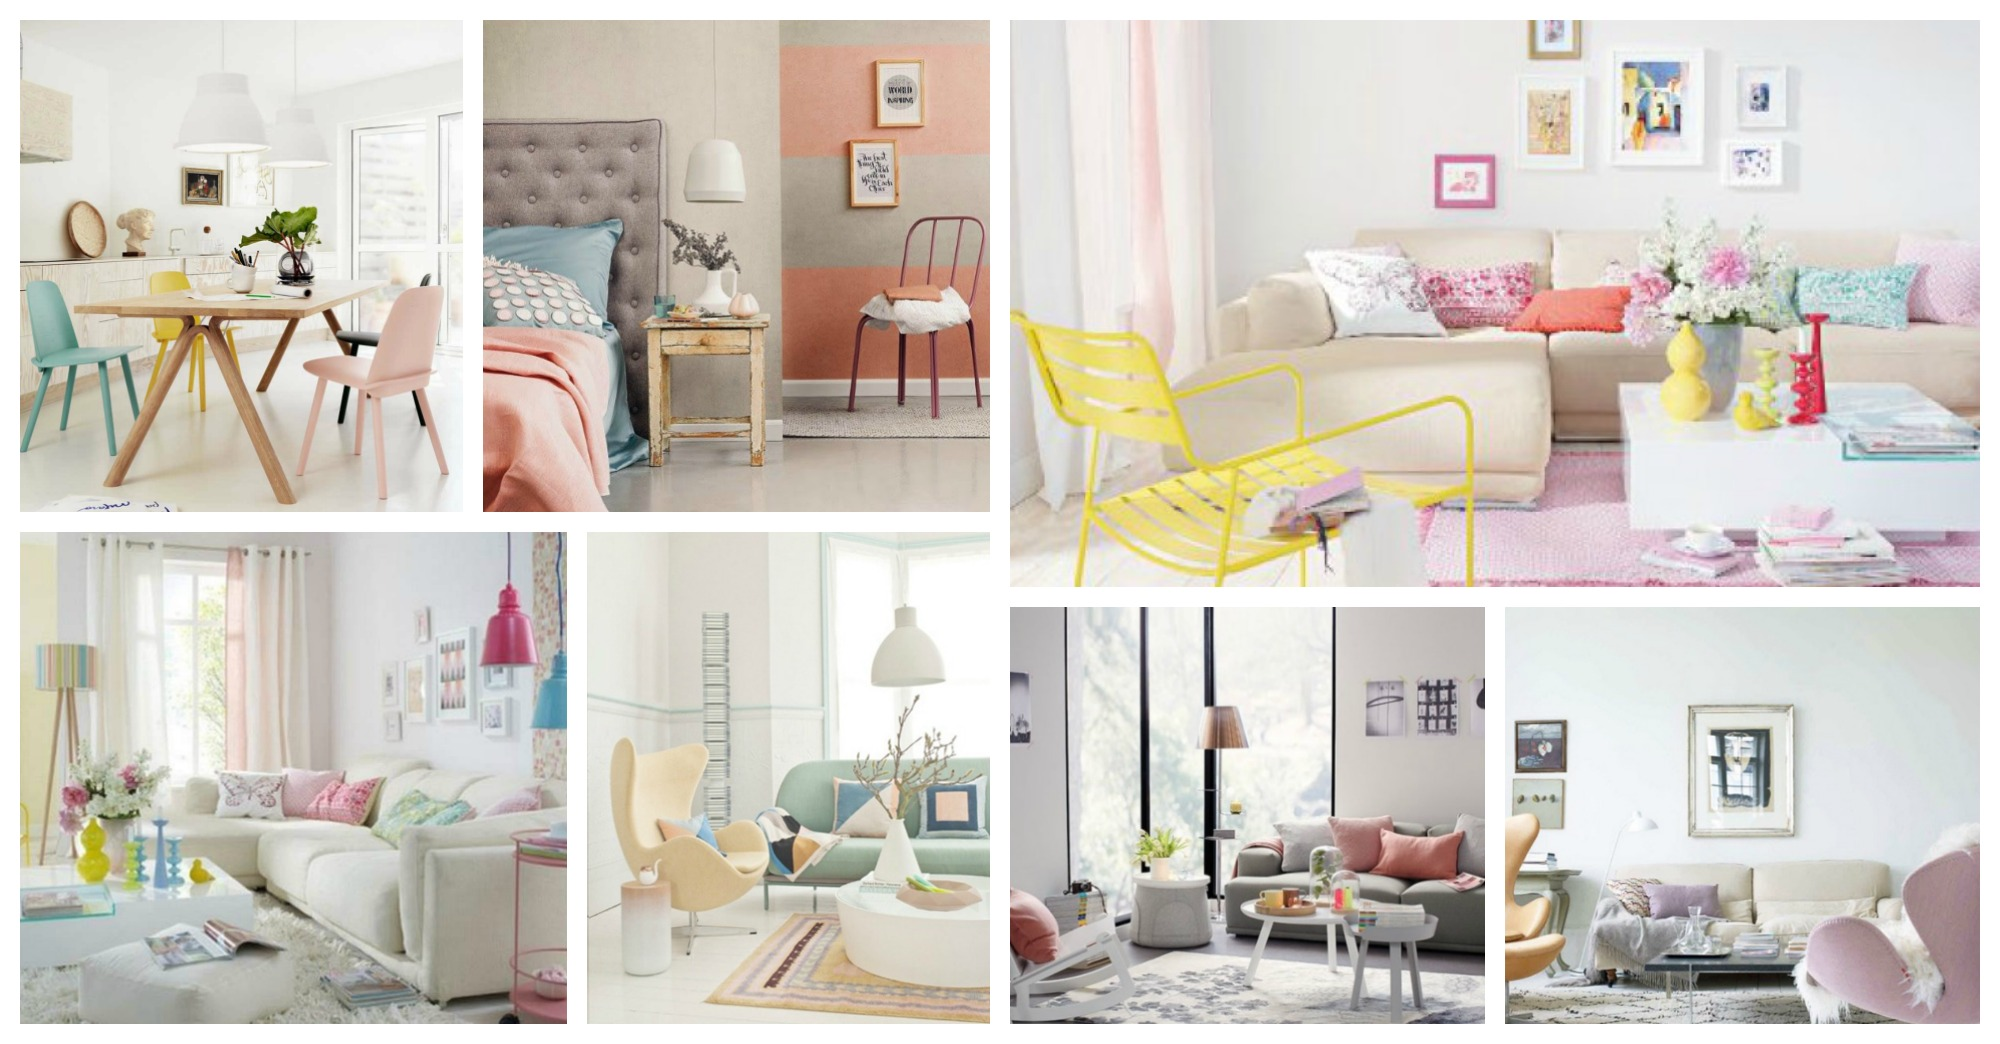 Pastel Interior Designs That Will Melt Your Heart